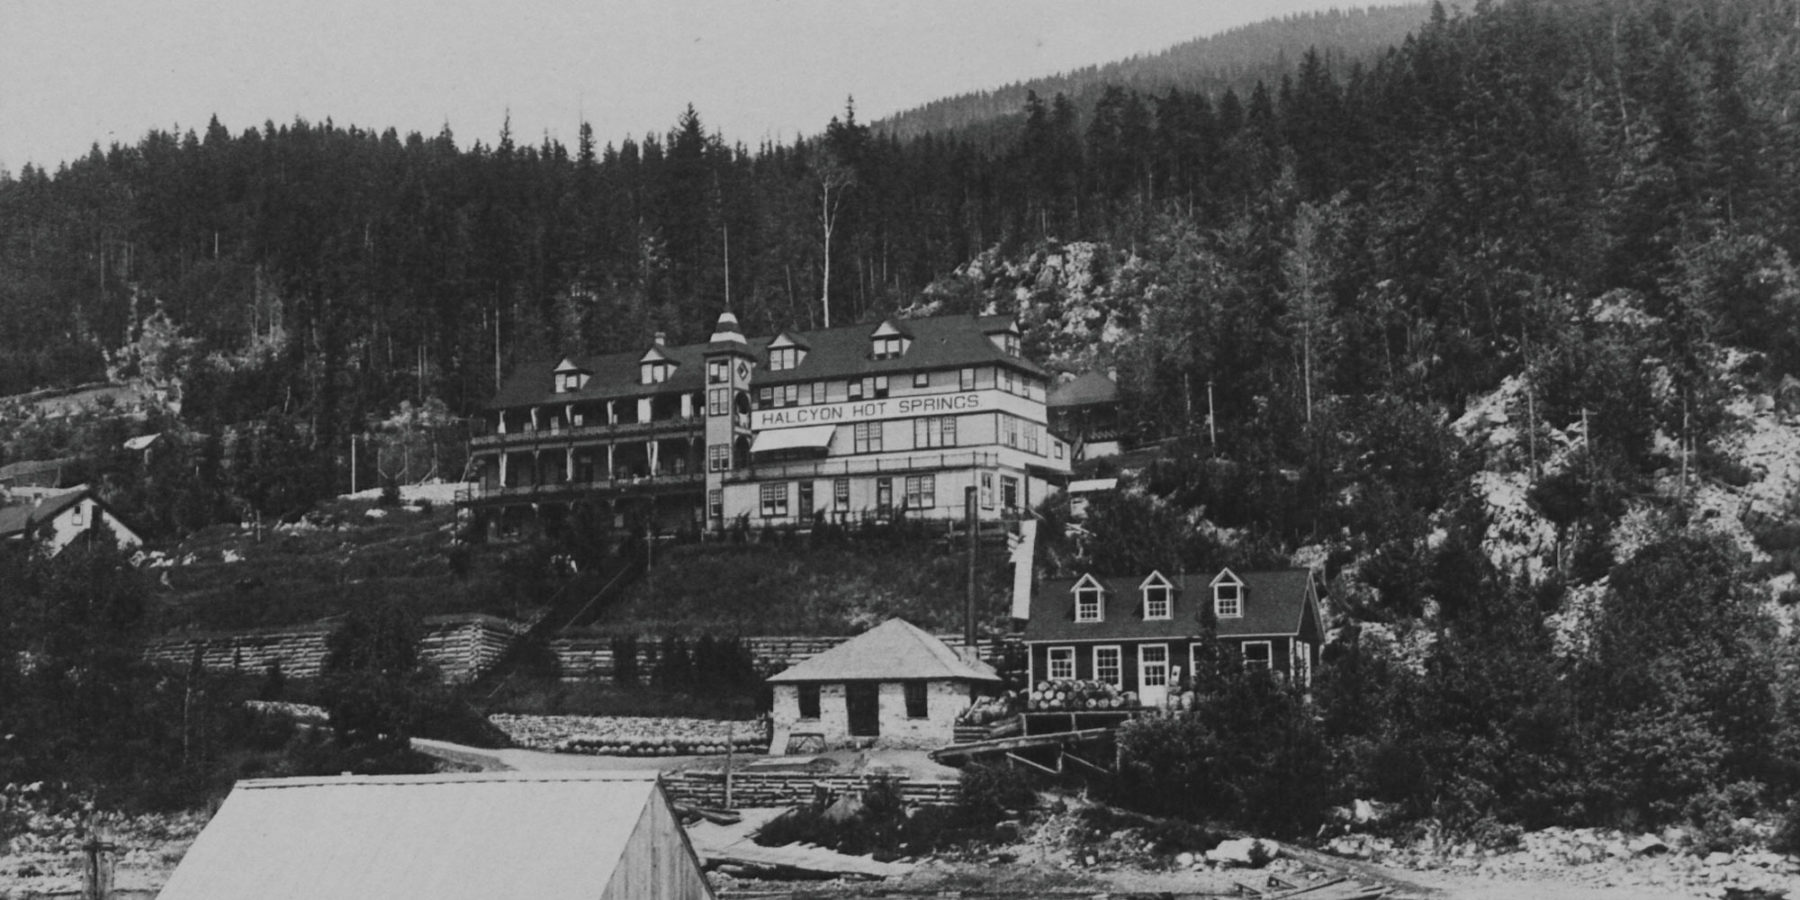 Image of Halcyon Hot Spring in 1908